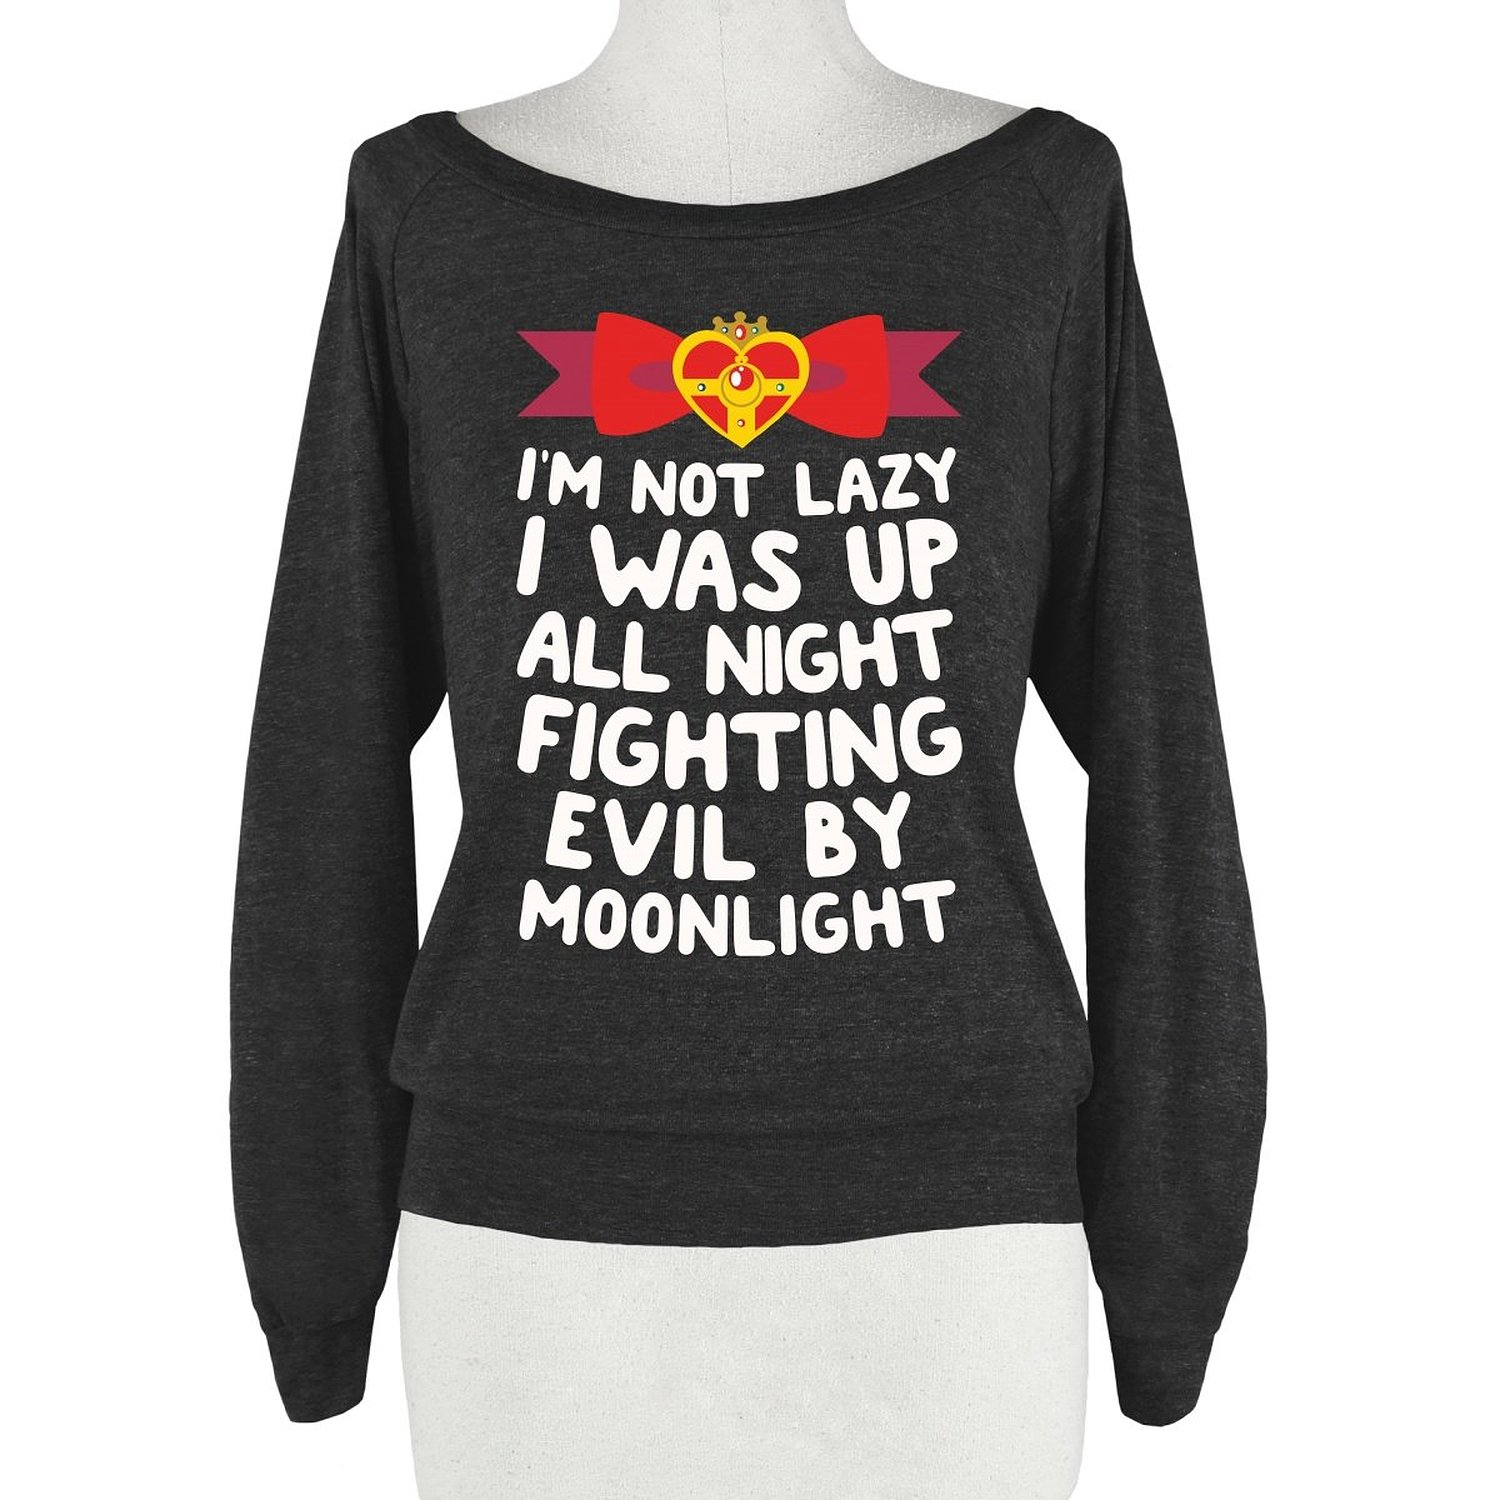 Amazon.com: HUMAN I Was Up Fighting Evil By Athletic Black T-Shirt: Clothing